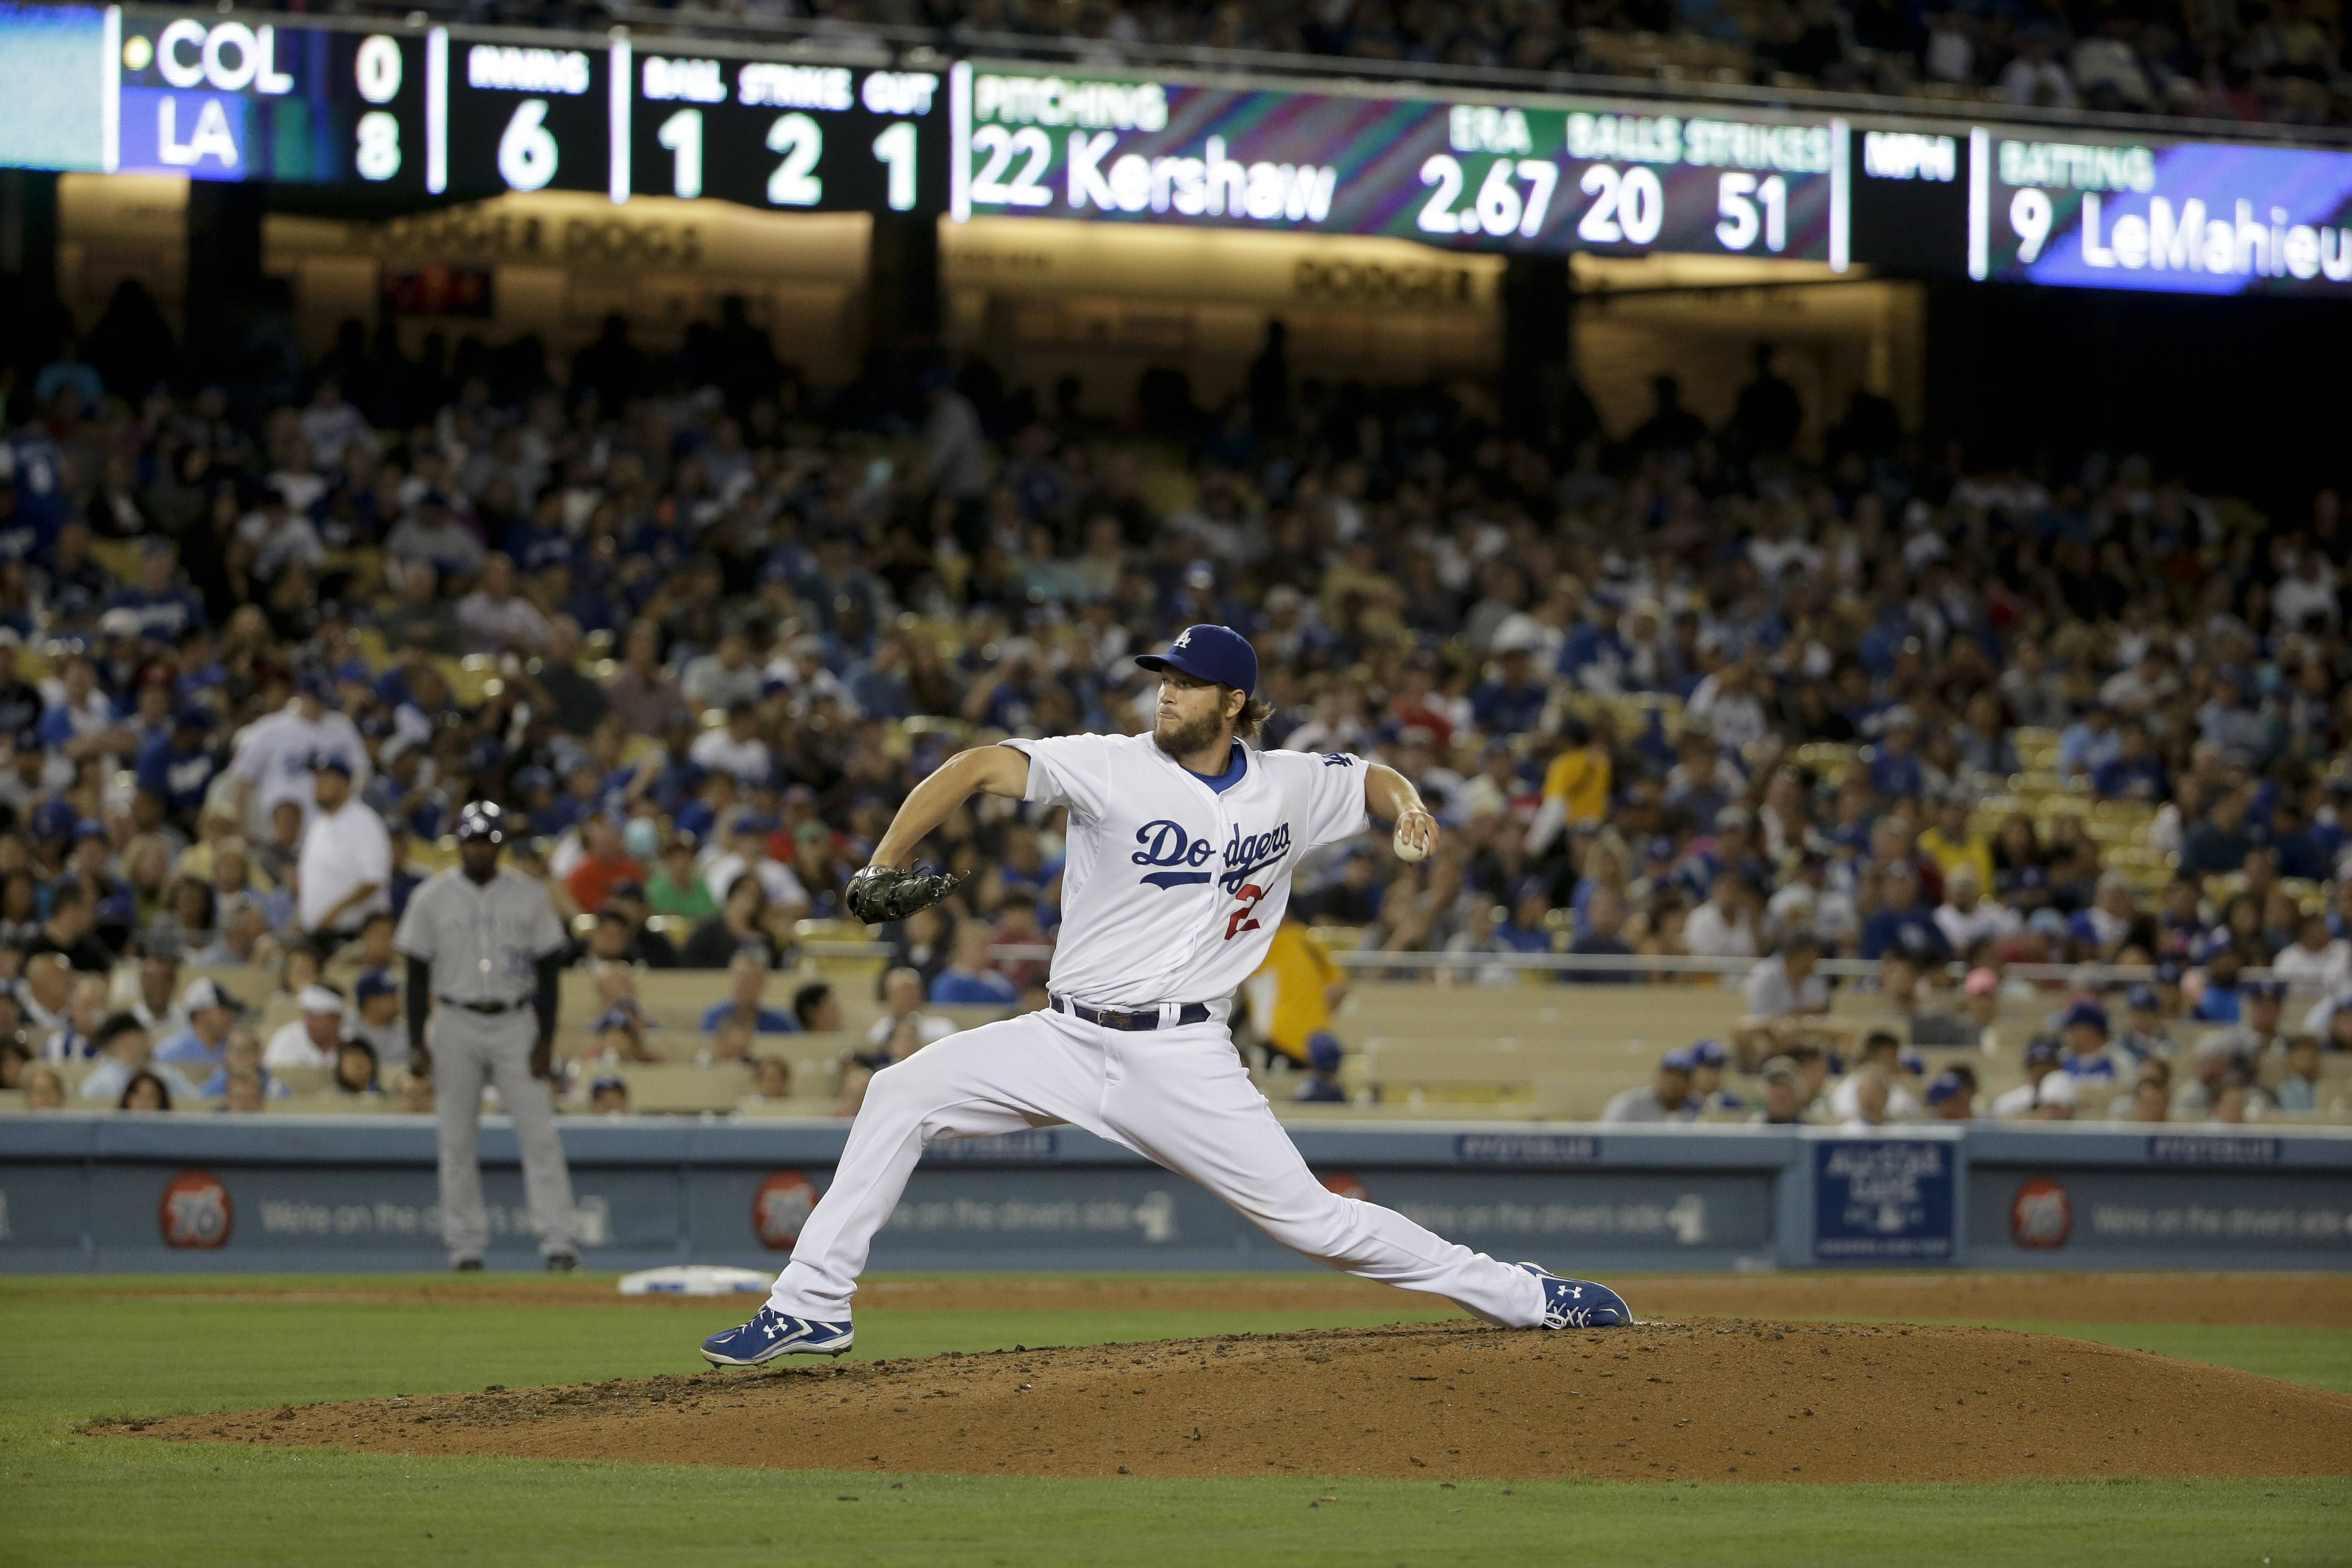 "Clayton Kershaw pitched his first no-hitter Wednesday night, striking out a career-high 15 and allowing his only baserunner on a throwing error by shortstop Hanley Ramirez in the Los Angeles Dodgers' 8-0 victory over the Colorado Rockies. Kershaw's gem gave the Dodgers the only two no-hitters in the majors this season. Josh Beckett tossed one May 25 in Philadelphia. ""I am so amazed,"" Kershaw said. ""Beckett told me he was going to teach me how to do that, so I have Josh to thank."""